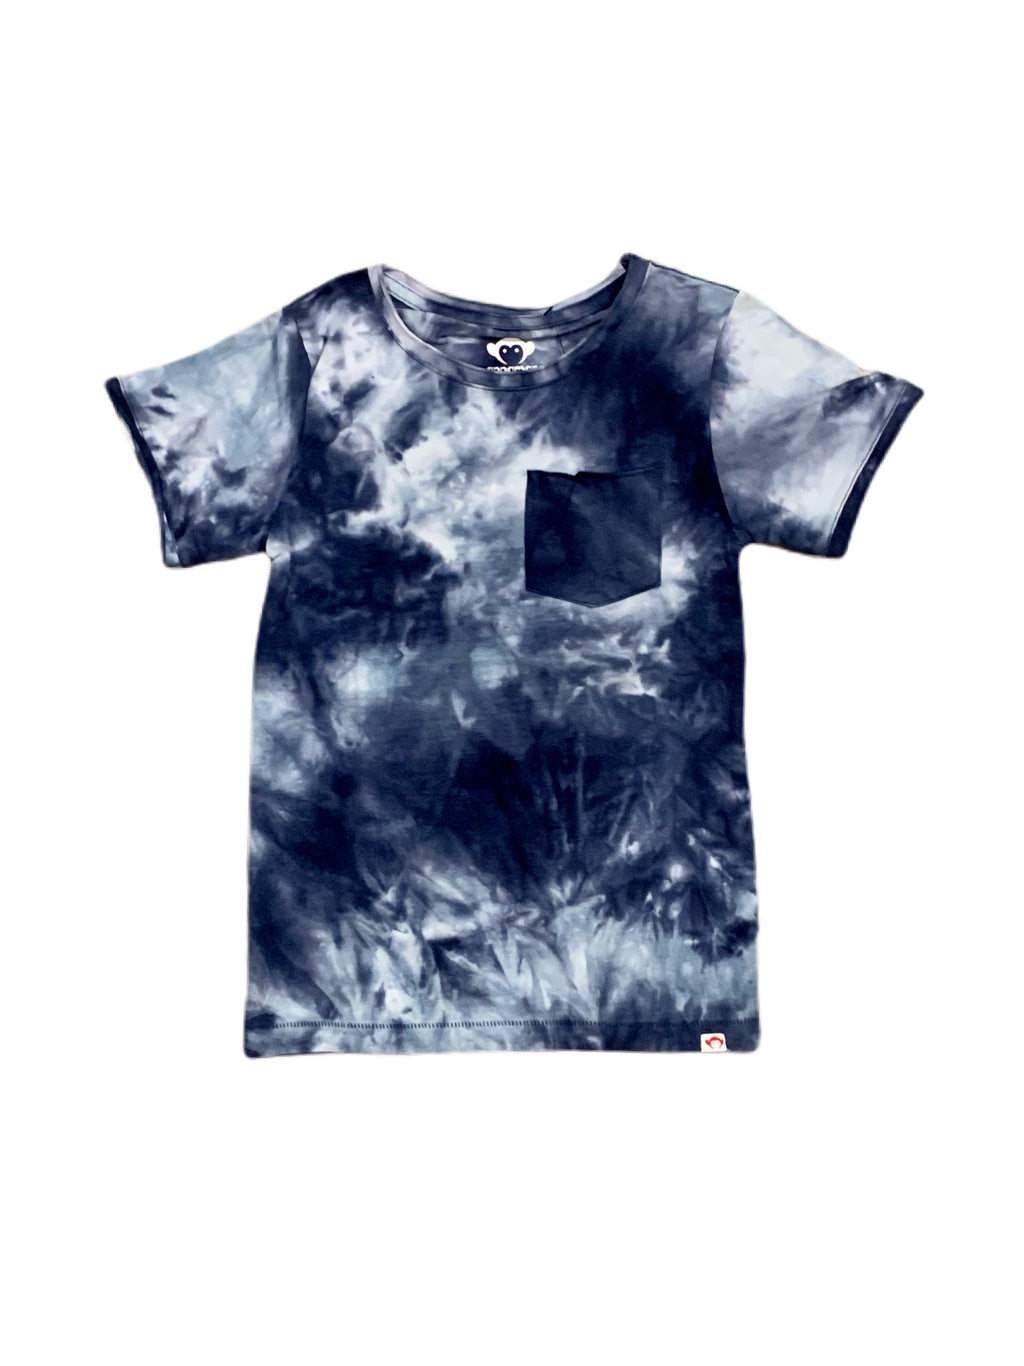 Appaman Navy Tie Dye Tee Shirt